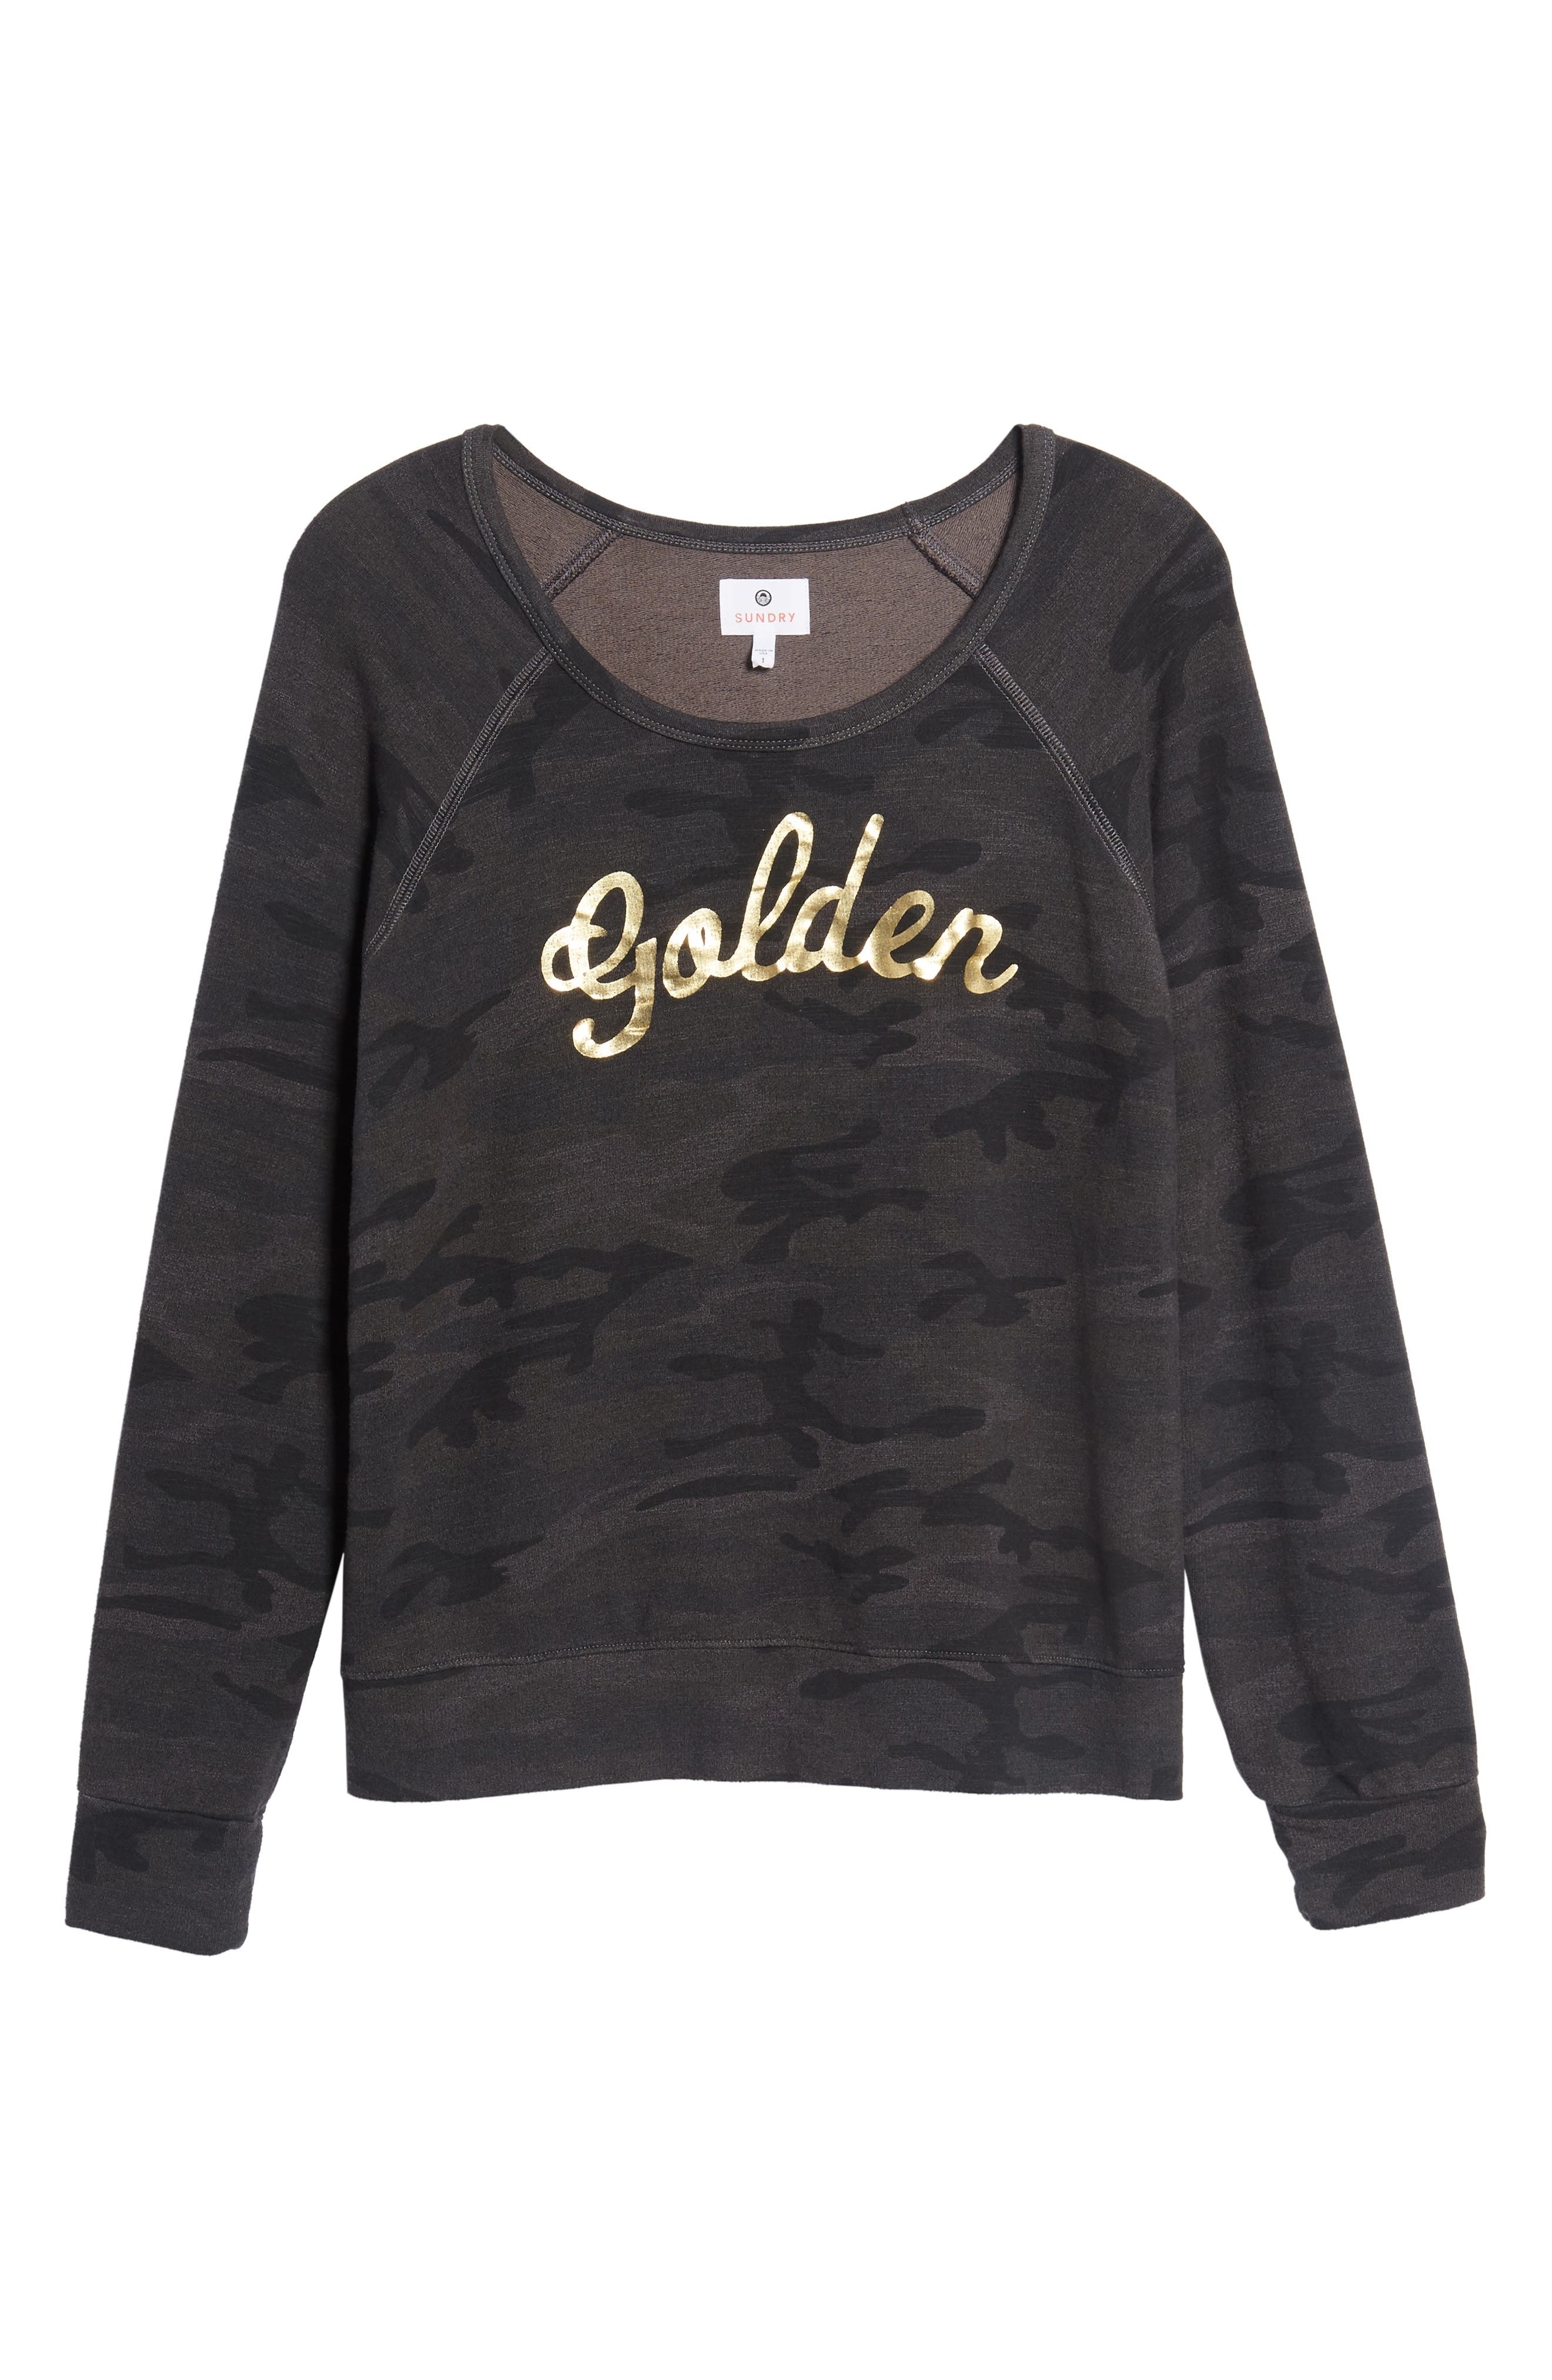 Active Golden Sweatshirt,                             Alternate thumbnail 6, color,